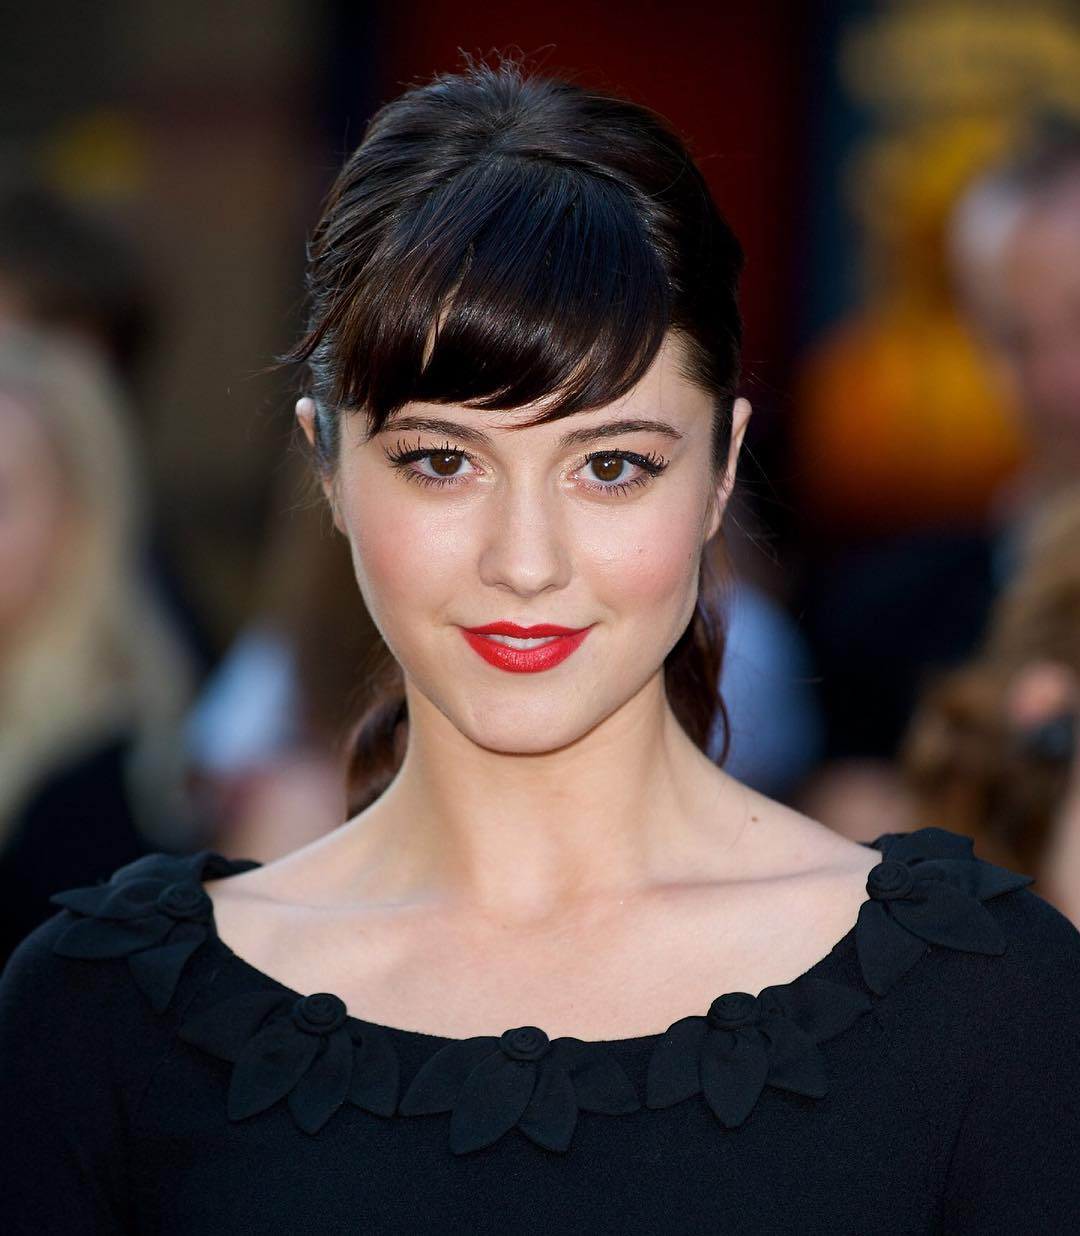 Mary Elizabeth Winstead Pics | Mary Elizabeth Winstead Pictures - HD Actress Photo